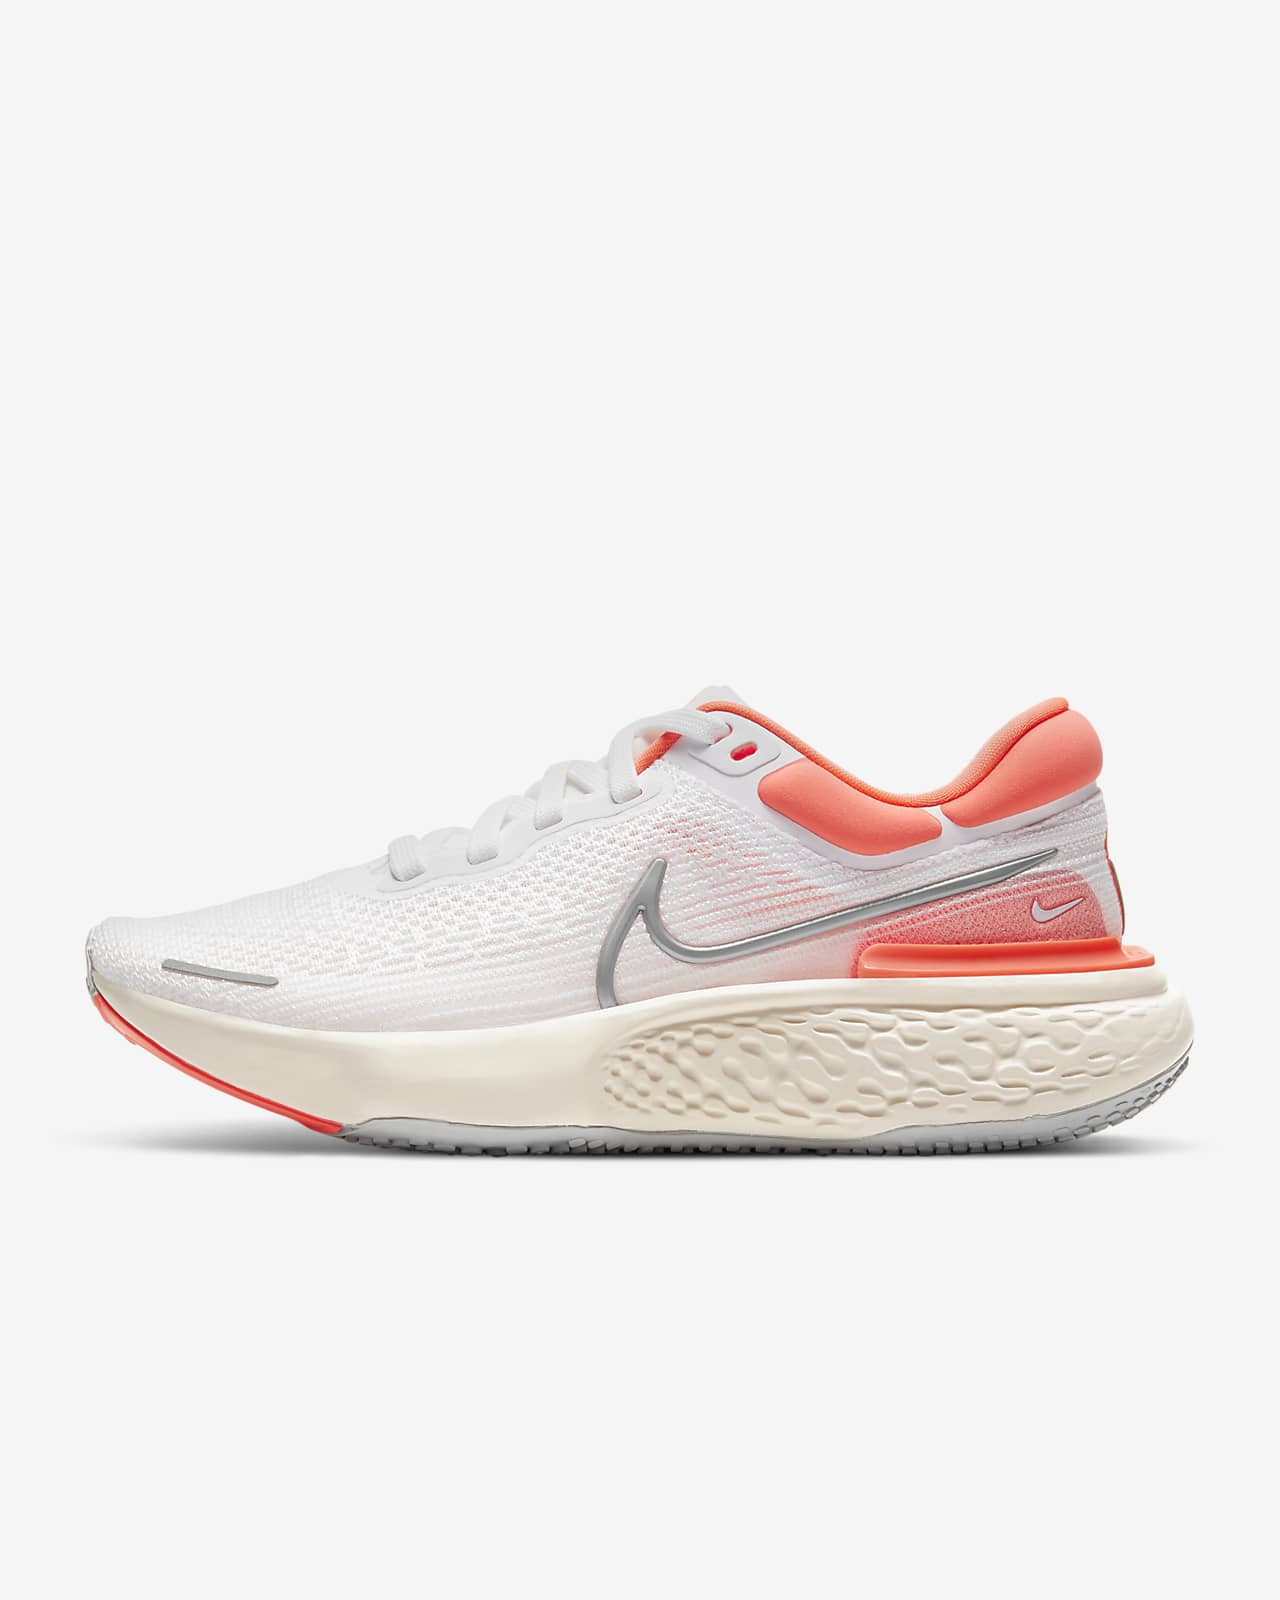 Nike ZoomX Invincible Run FK 女子跑步鞋